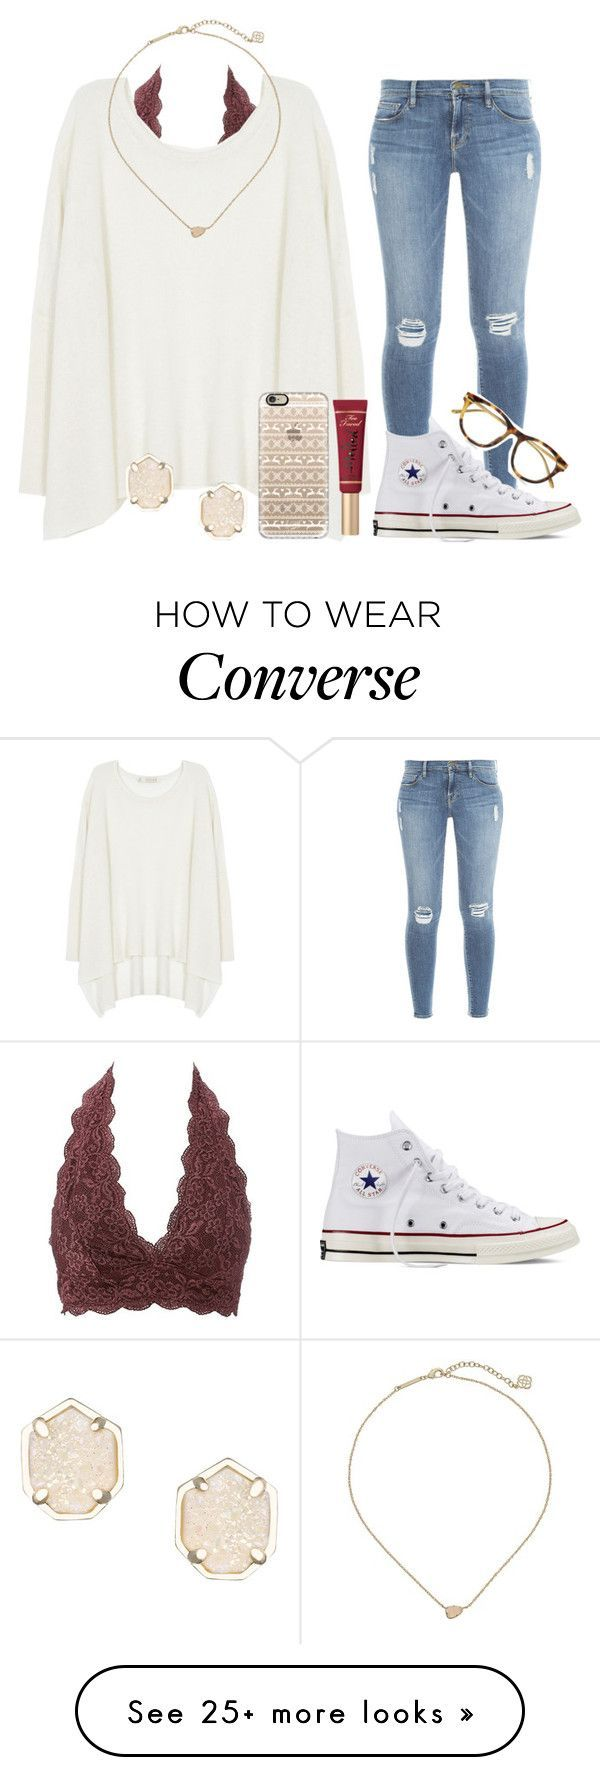 """""""READ DESCRIPTION PLEASE!!!"""" by chevron-volleyball on Polyvore featuring Frame Denim, Charlotte Russe, Century Seven, Kendra Scott, Linda Farrow Luxe, Too Faced Cosmetics, Casetify and Converse #schooloutfits"""